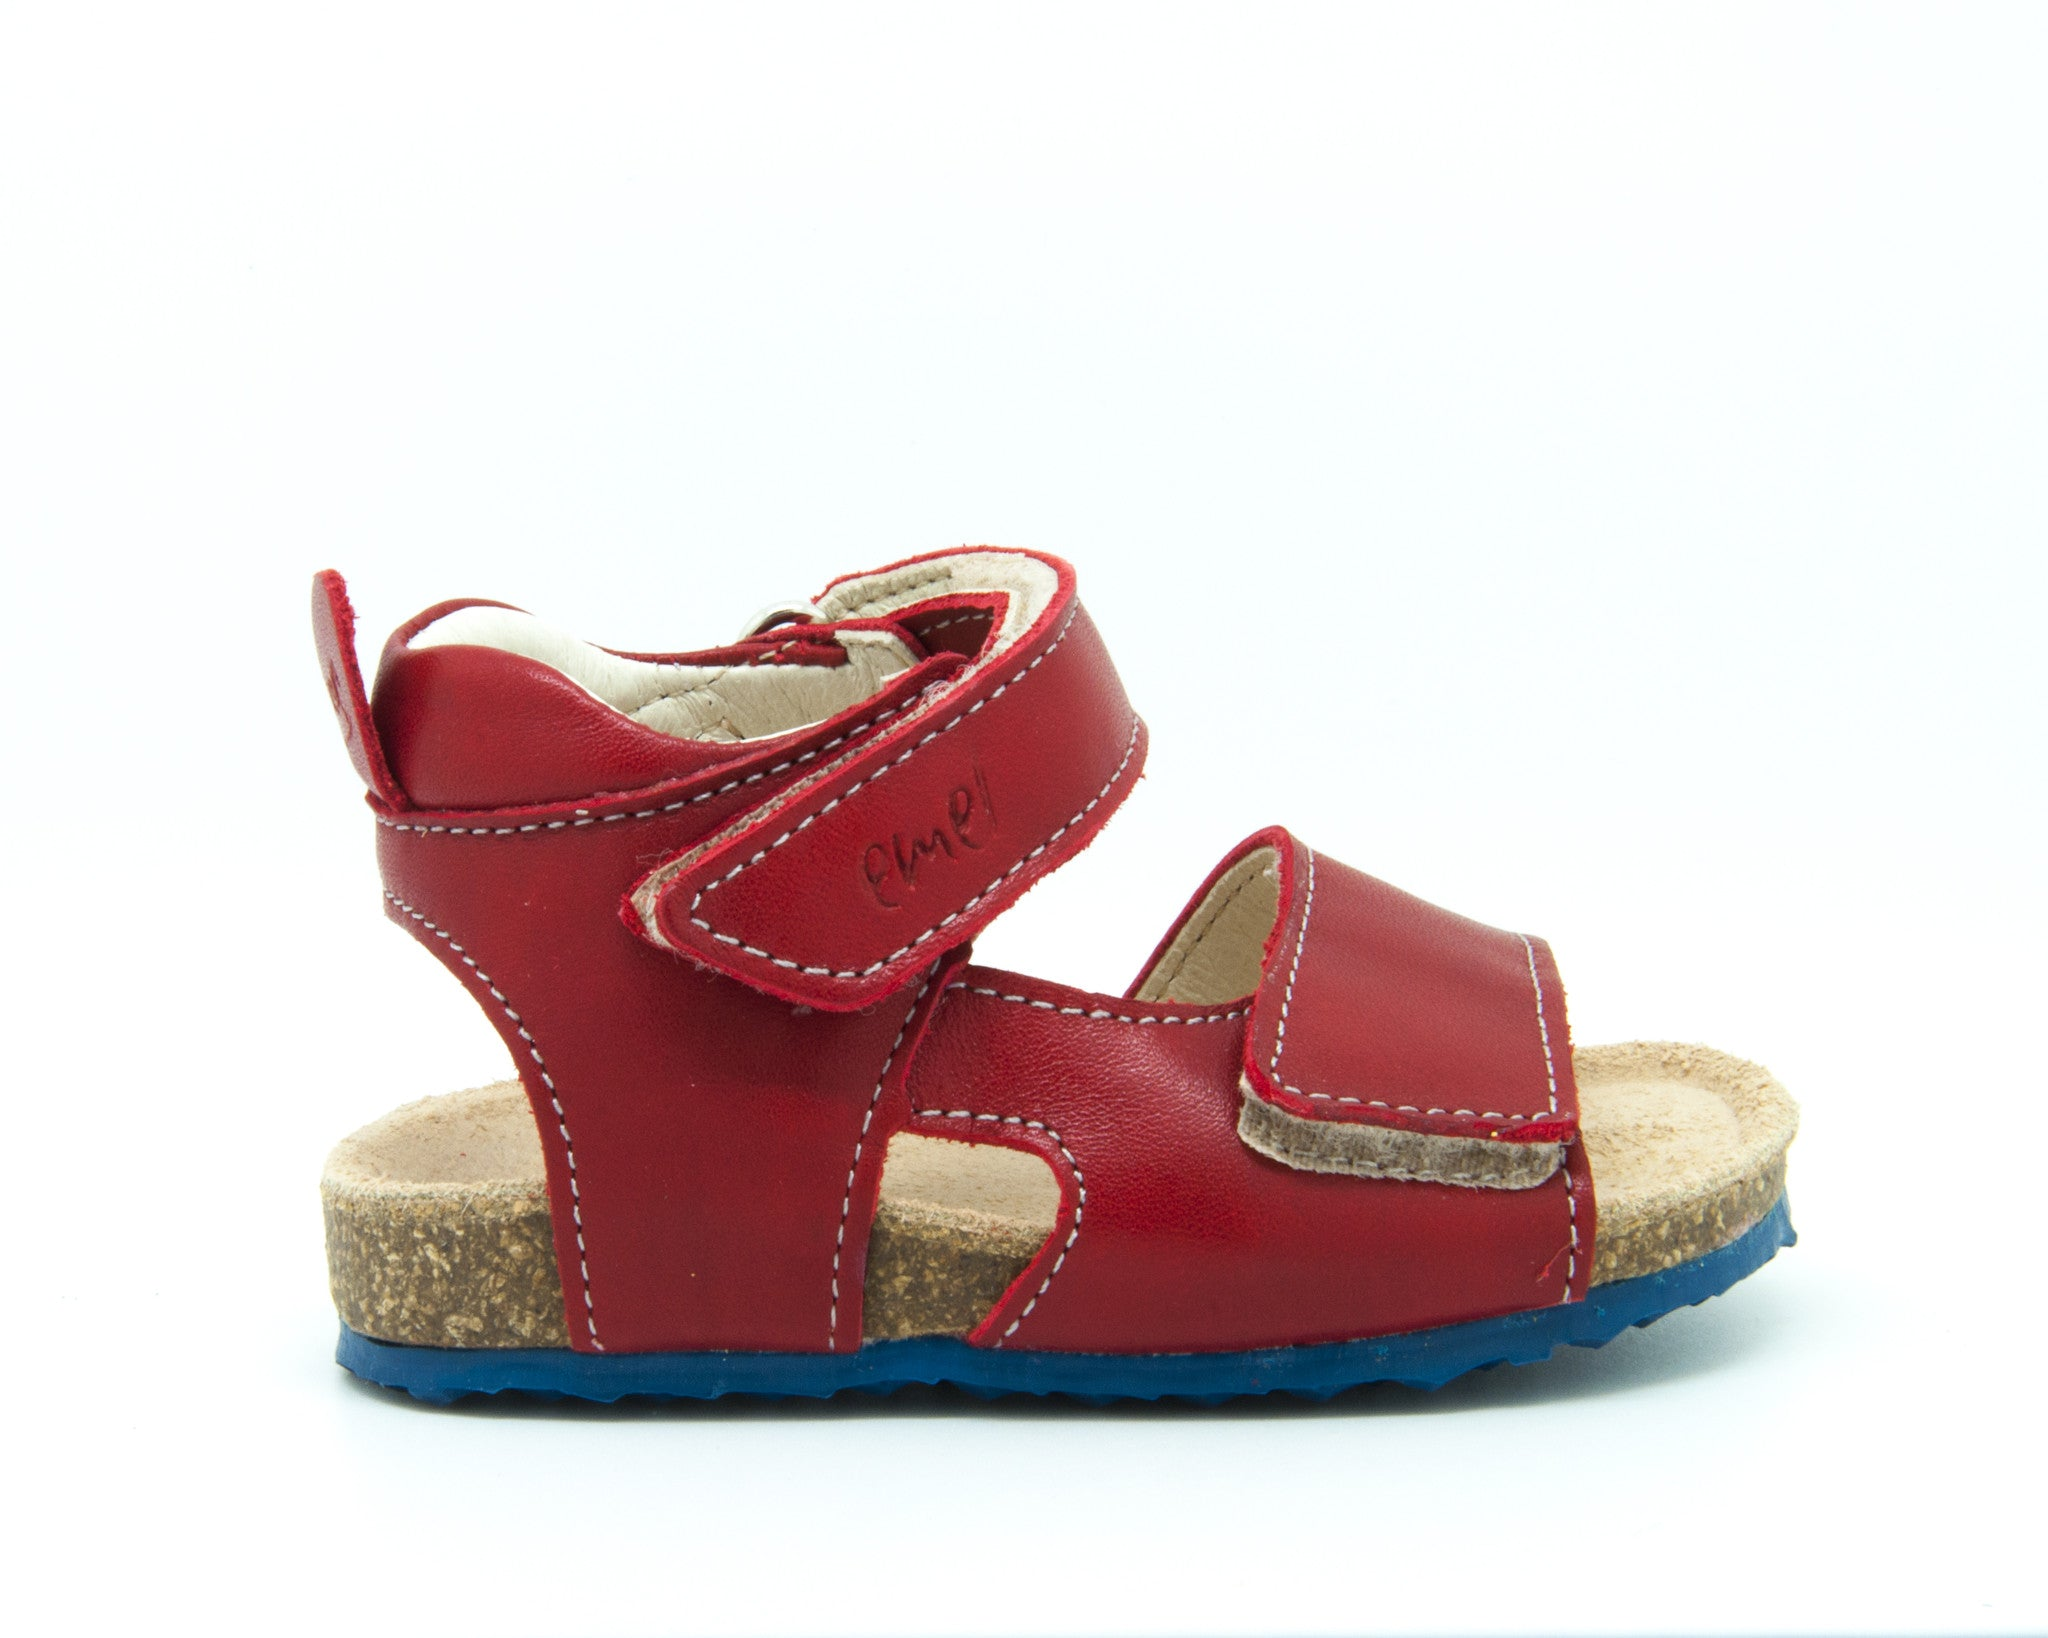 ad20506c30171 Emel Red Leather Double Velcro Cork Bed Sandals (e2508-4) - Emel Shoes